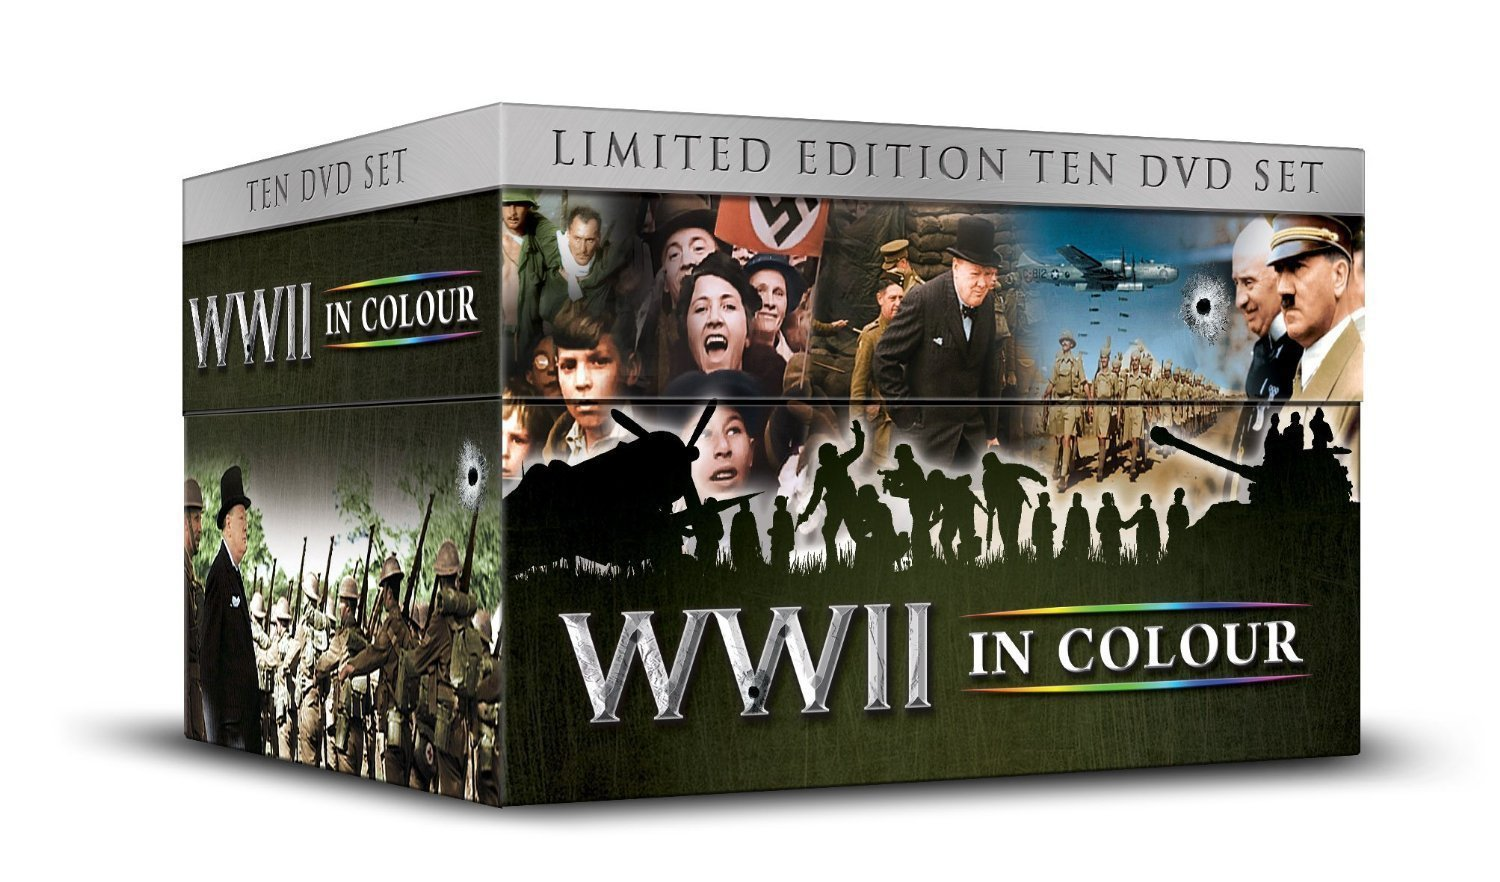 WWII IN COLOUR - DVD